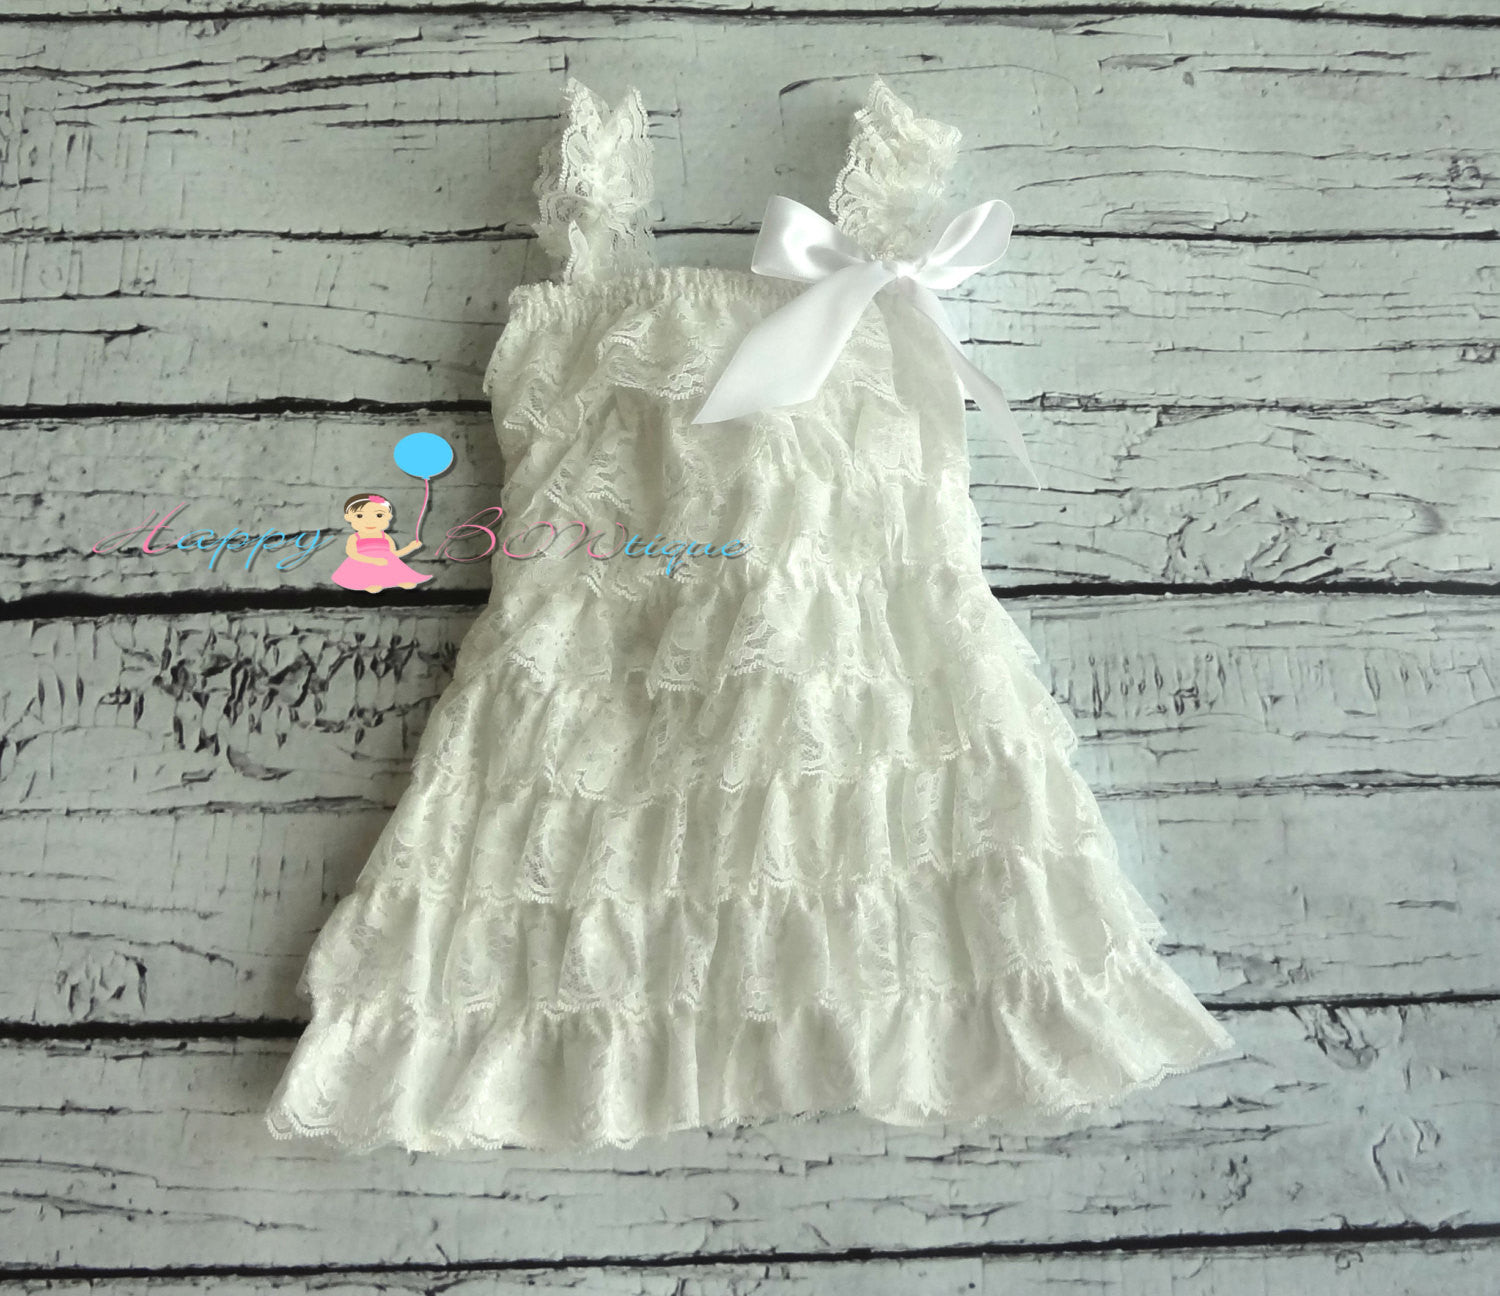 Vintage White Coral Girl's Lace Dress/ Girl's White Dress - Happy BOWtique - children's clothing, Baby Girl clothing